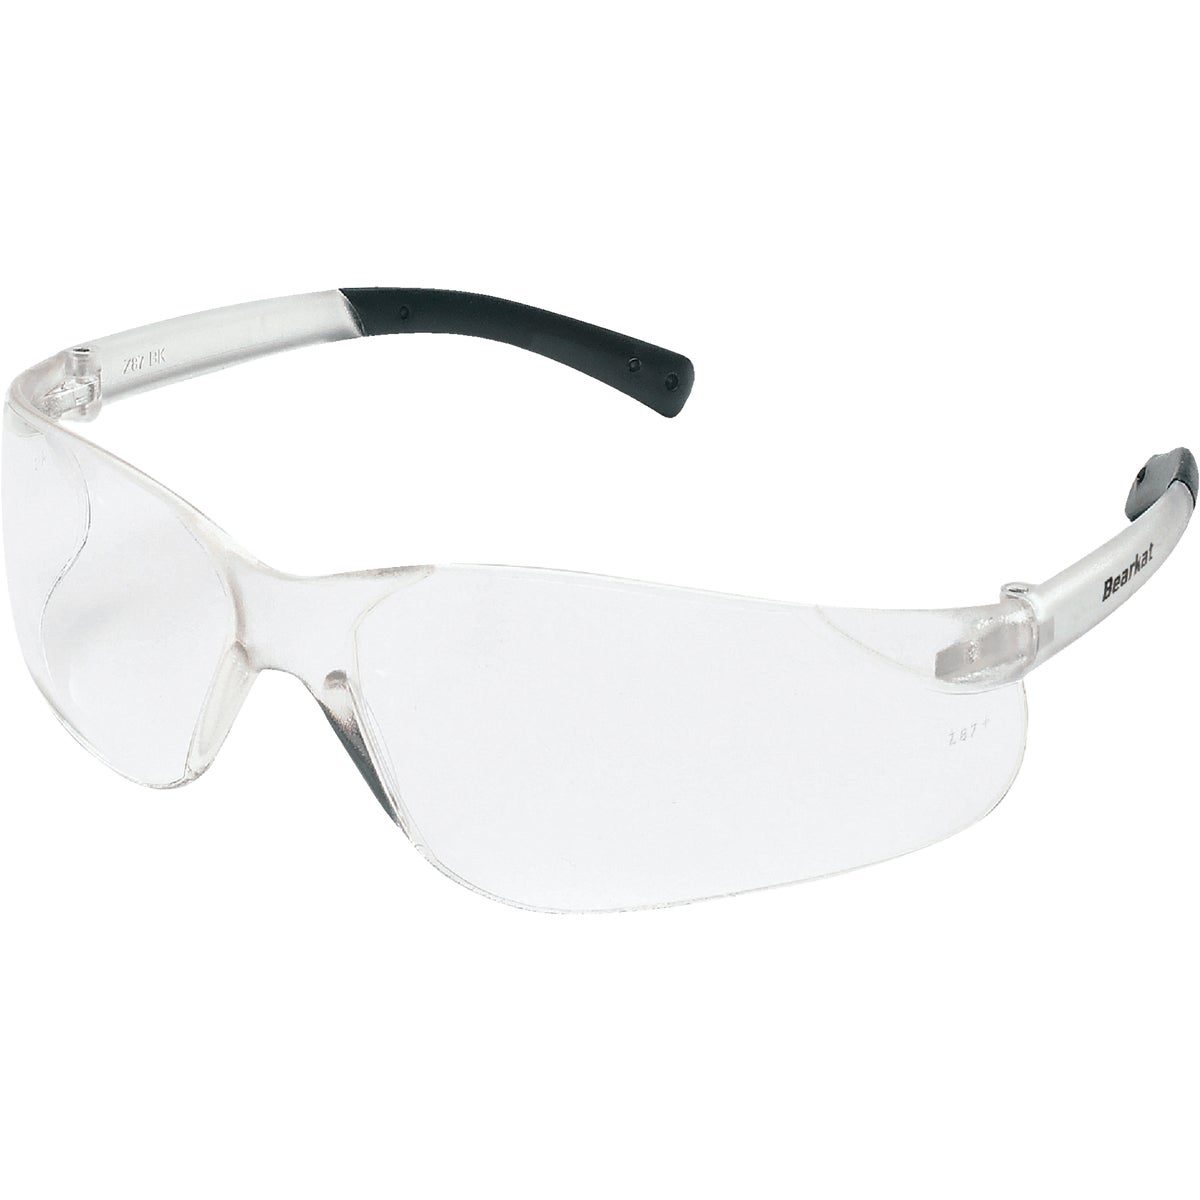 2X MAG SAFETY GLASSES - 10061646 by Msa Safety